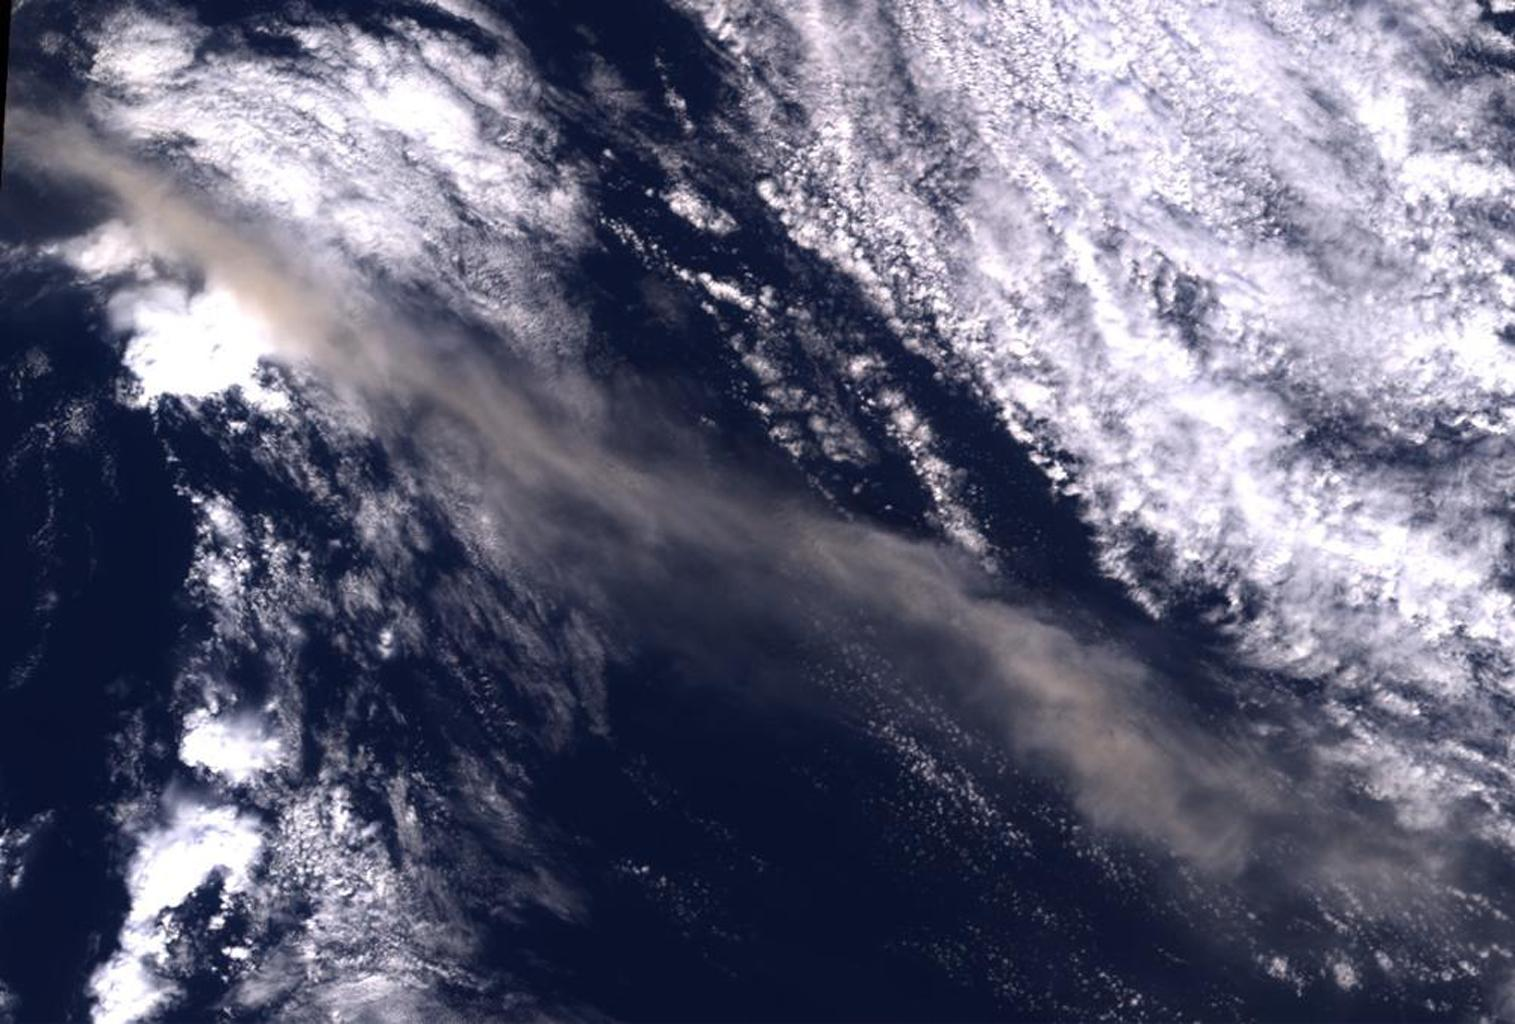 Ash from Iceland's Eyjafjallajökull volcano, viewed here in imagery from NASA's Terra spacecraft on May 16, 2010, once again disrupted air traffic over Europe with the closure of major airports in the United Kingdom and the Netherlands.